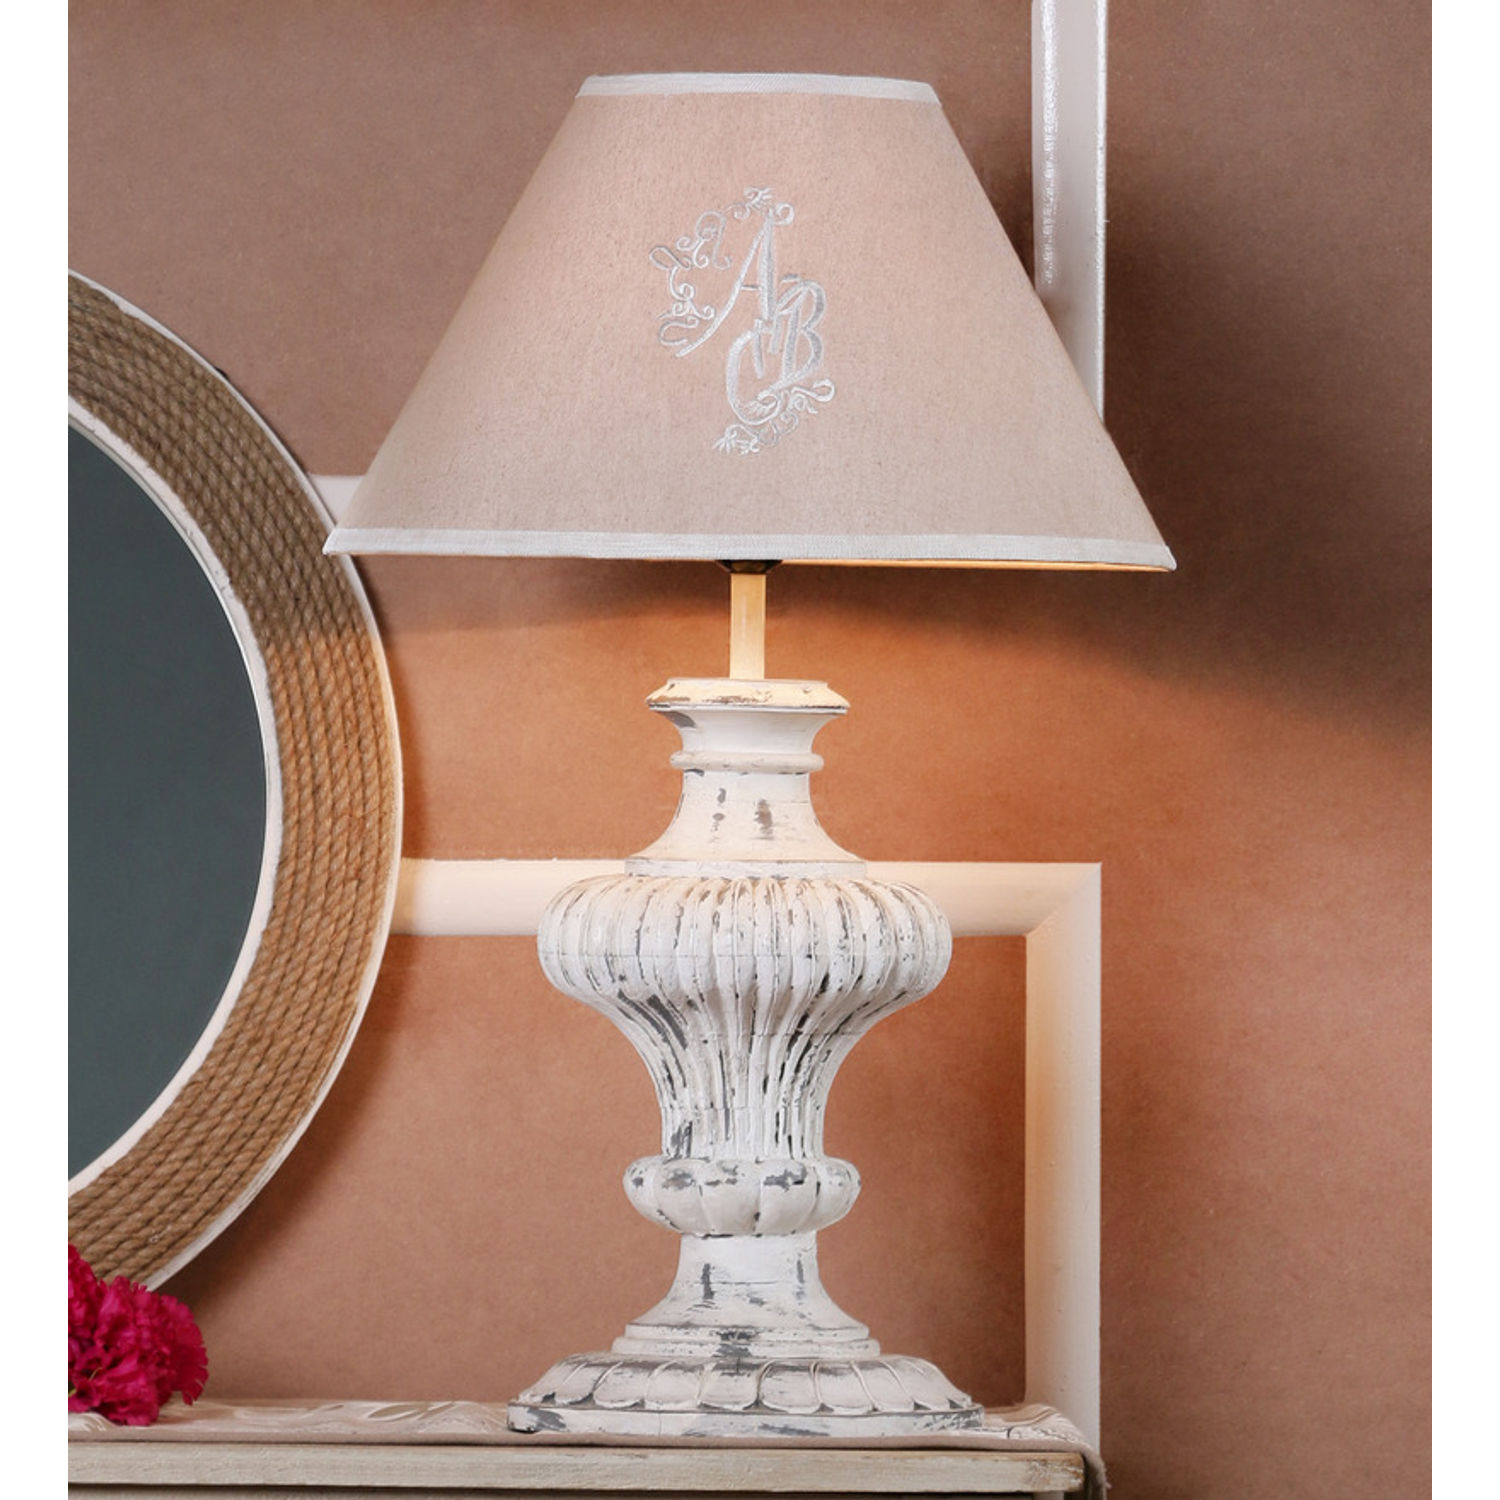 Decor Mart Table Lamp Wood White Distressed Colour With